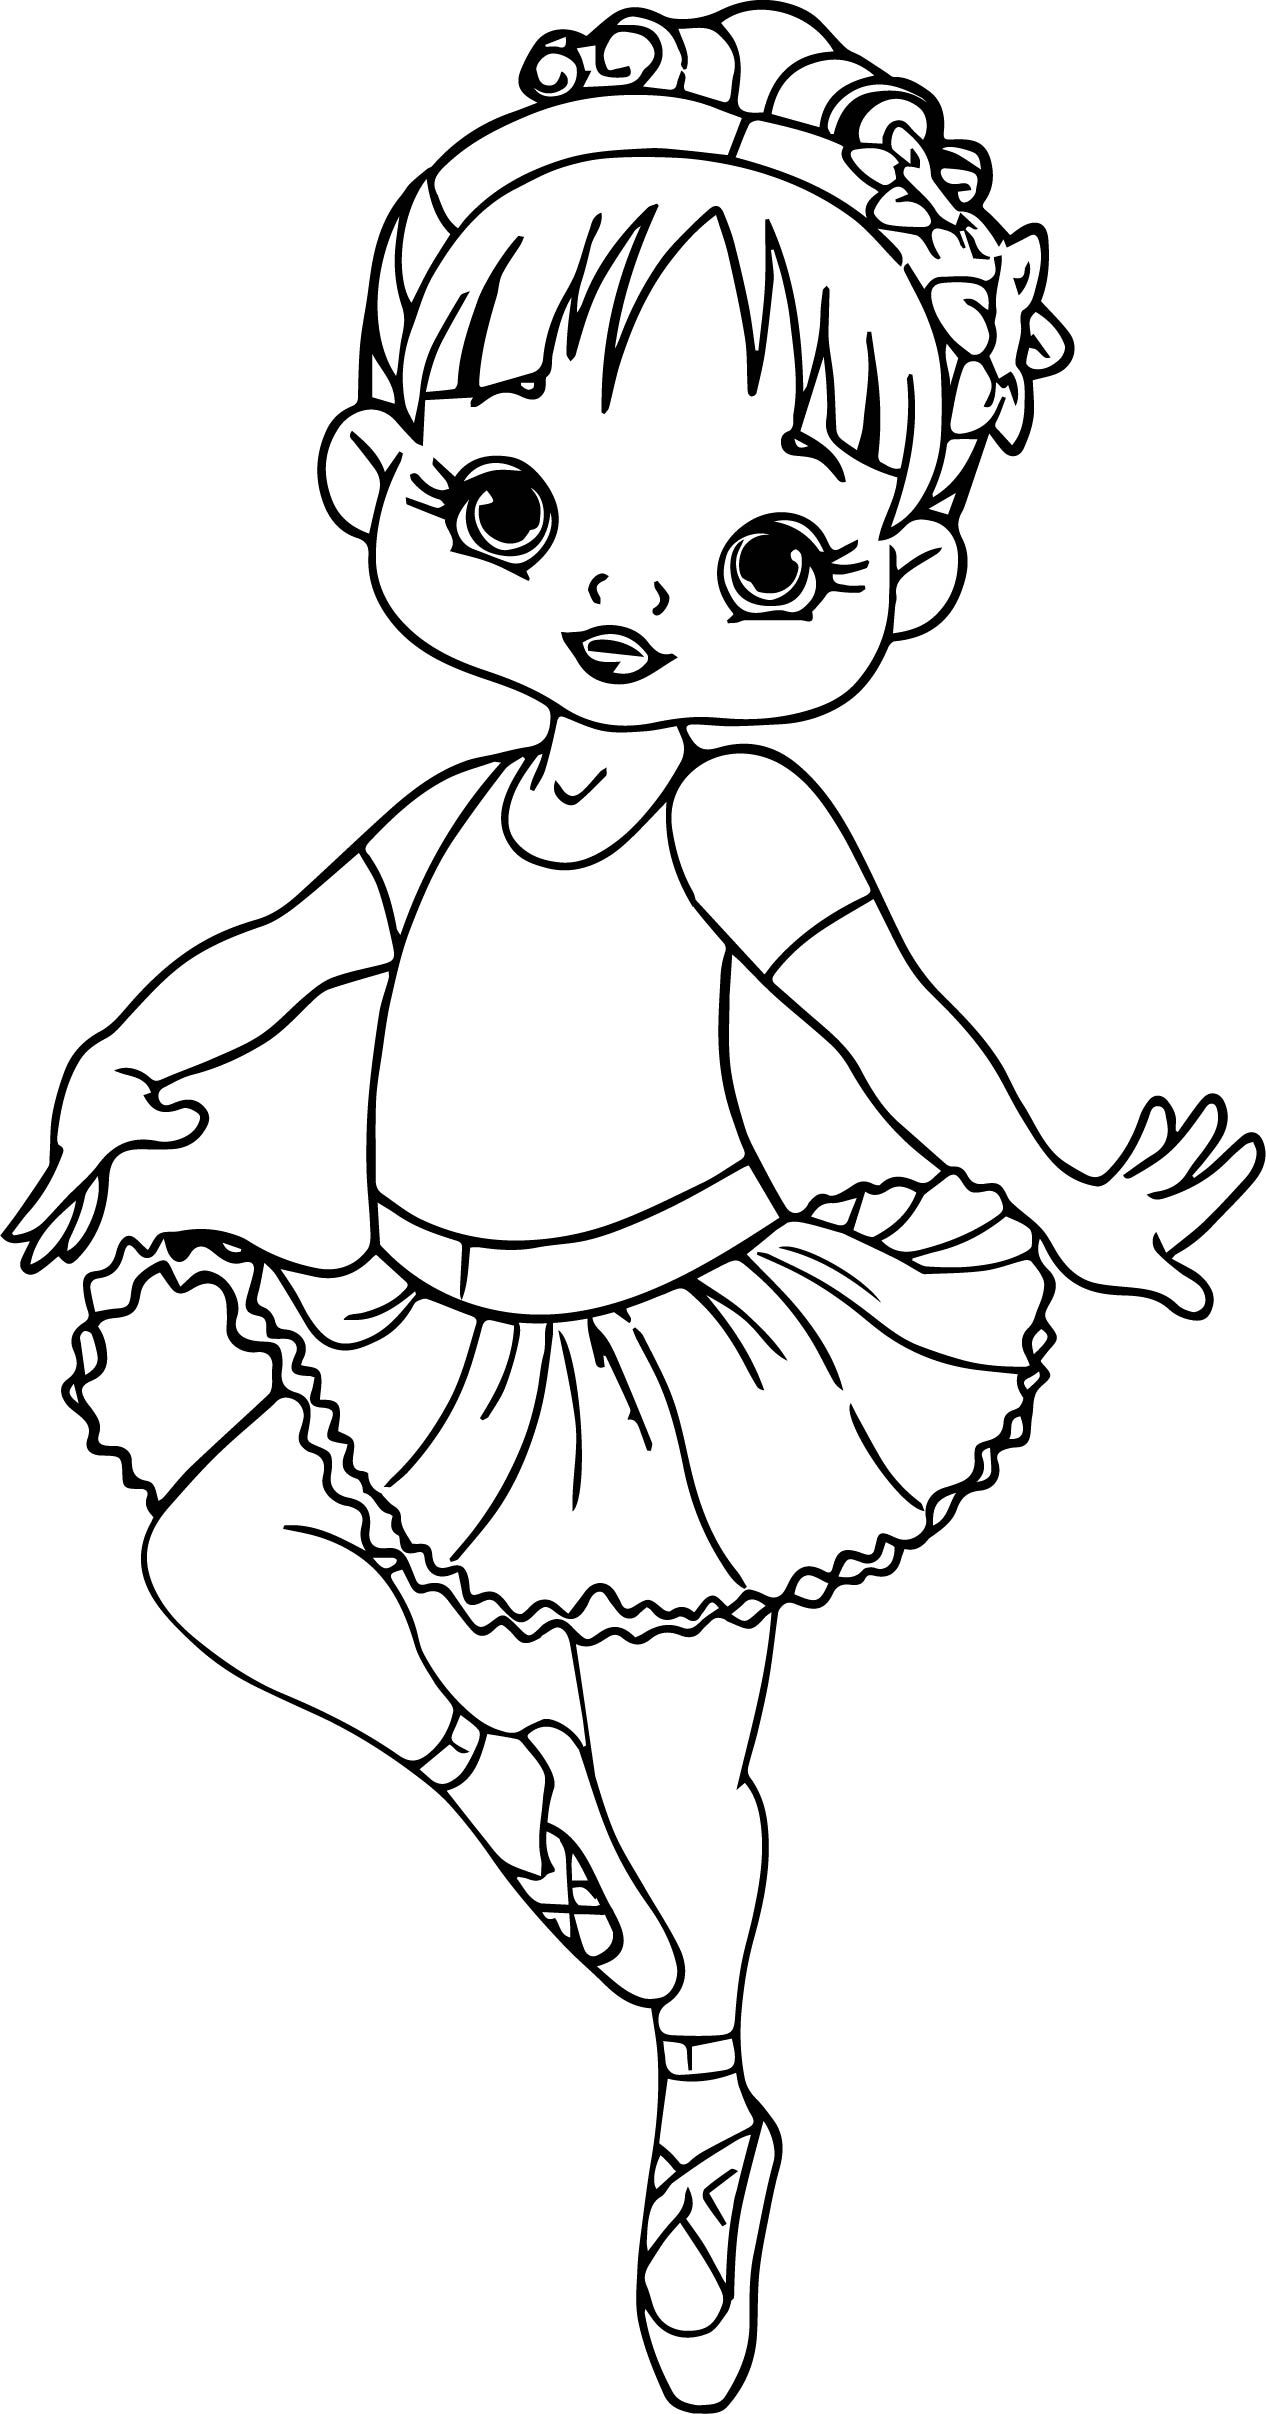 Ballerina Cartoon Girl Coloring